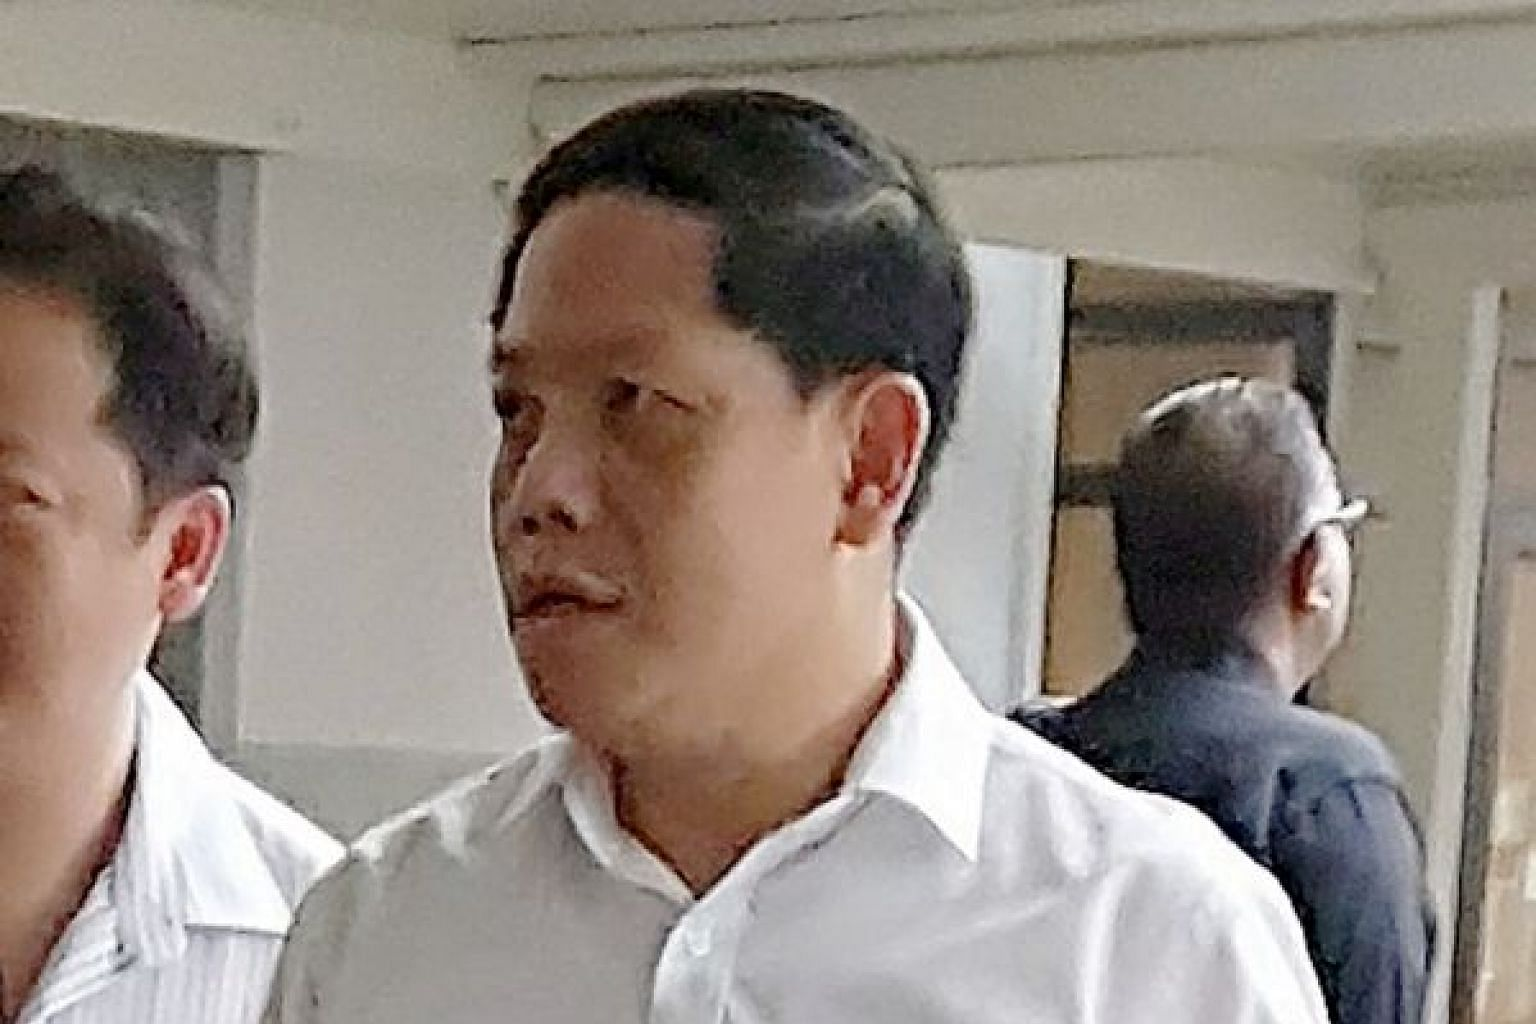 Lin Li Hao, 46, managing director of a manufacturing firm, has been sentenced to 18 weeks' jail.